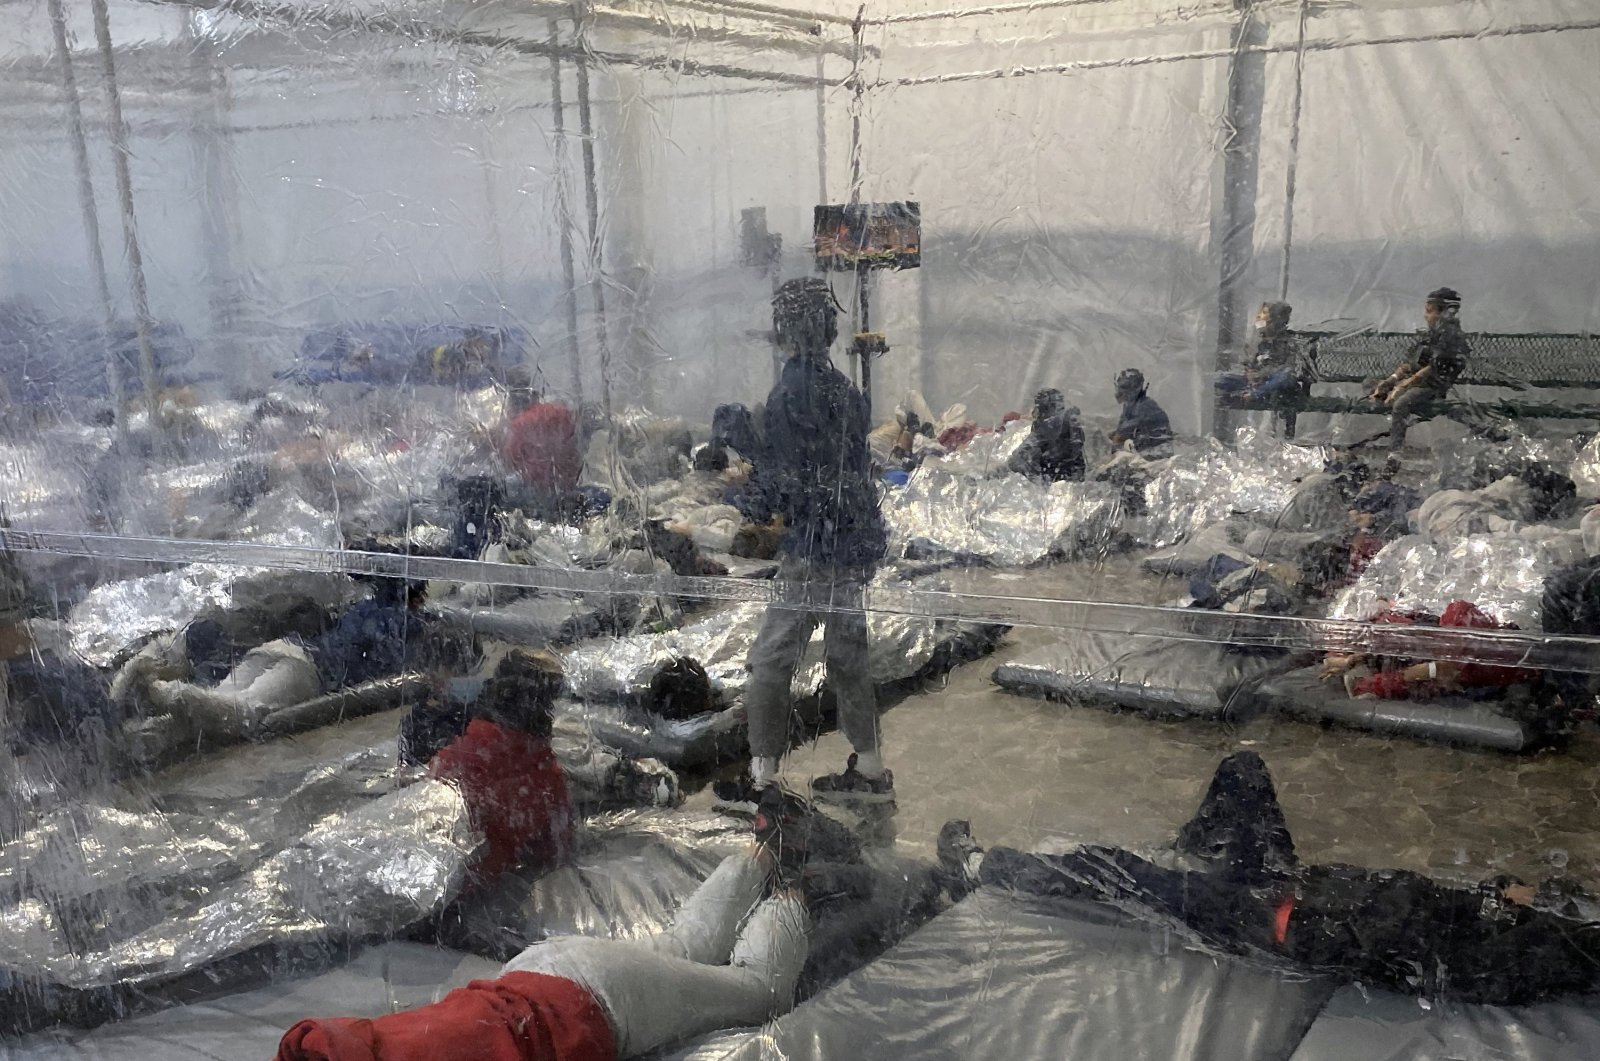 Detainees in a Customs and Border Protection (CBP) temporary overflow facility in Donna, Texas, U.S., March 20, 2021. (Photo provided by the Office of Rep. Henry Cuellar, D-Texas, via AP)